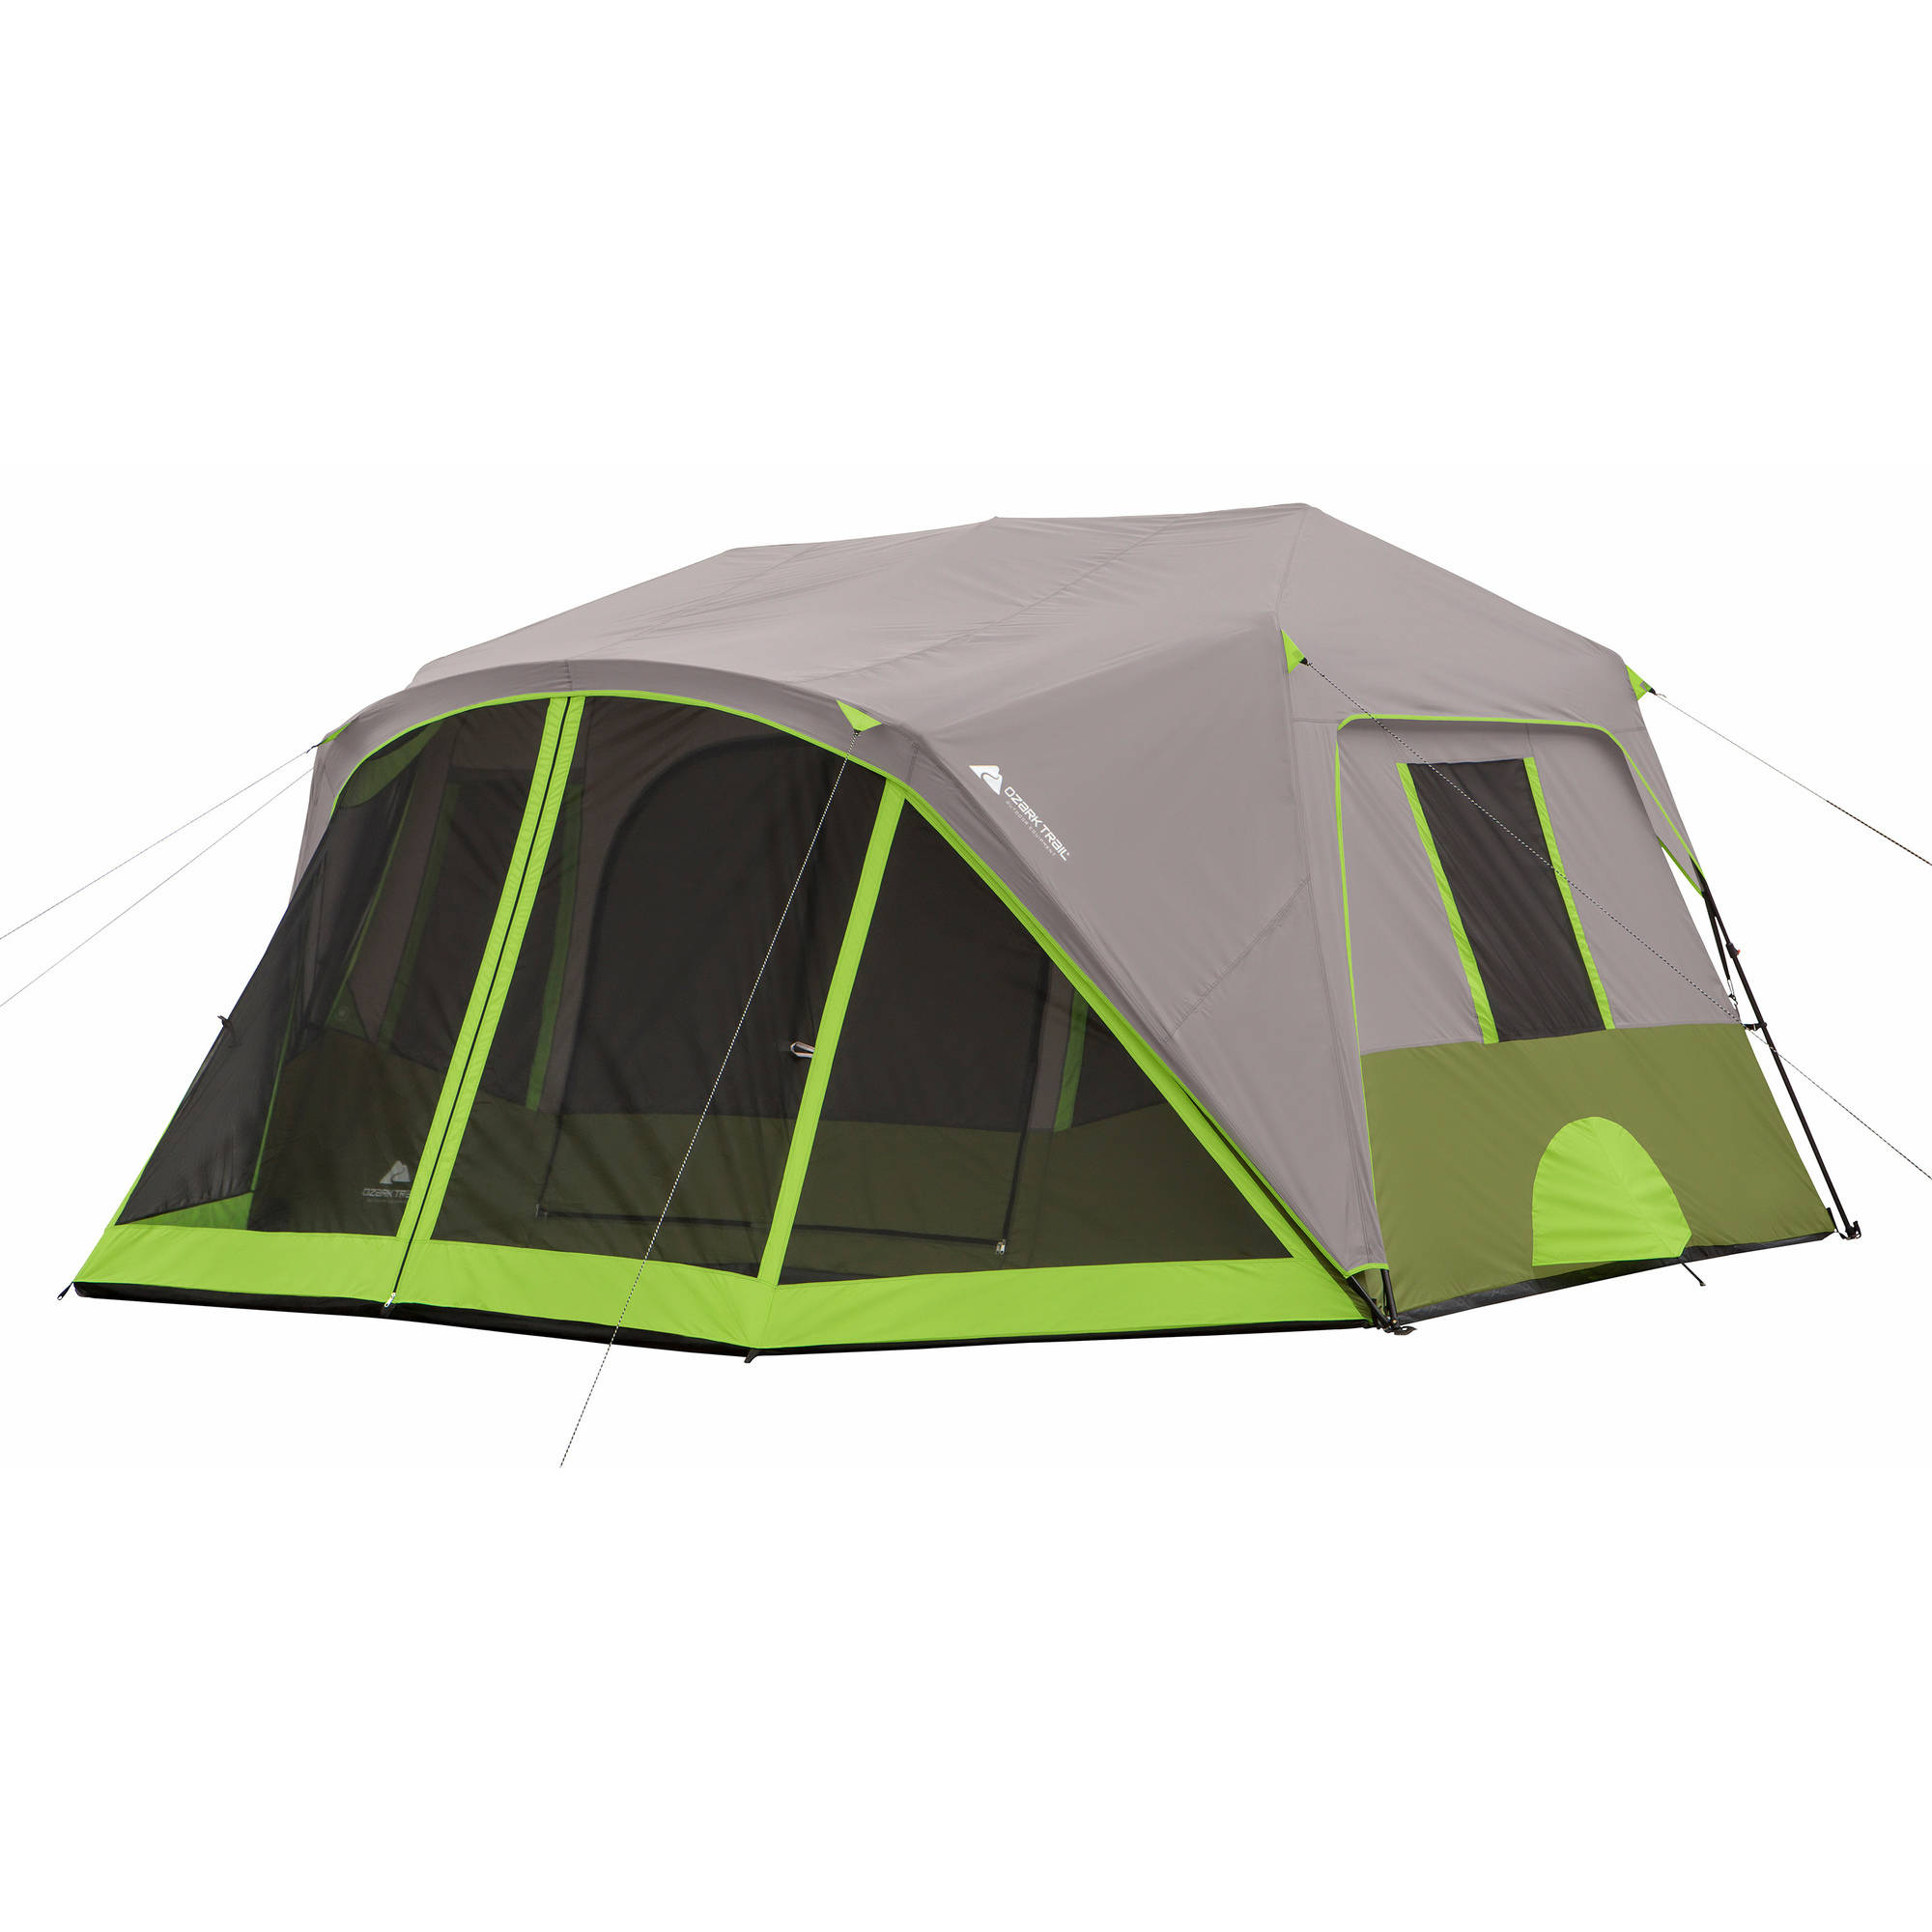 Ozark Trail 9 Person 2 Room Instant Cabin Tent with Screen Room - Walmart.com  sc 1 st  Walmart & Ozark Trail 9 Person 2 Room Instant Cabin Tent with Screen Room ...